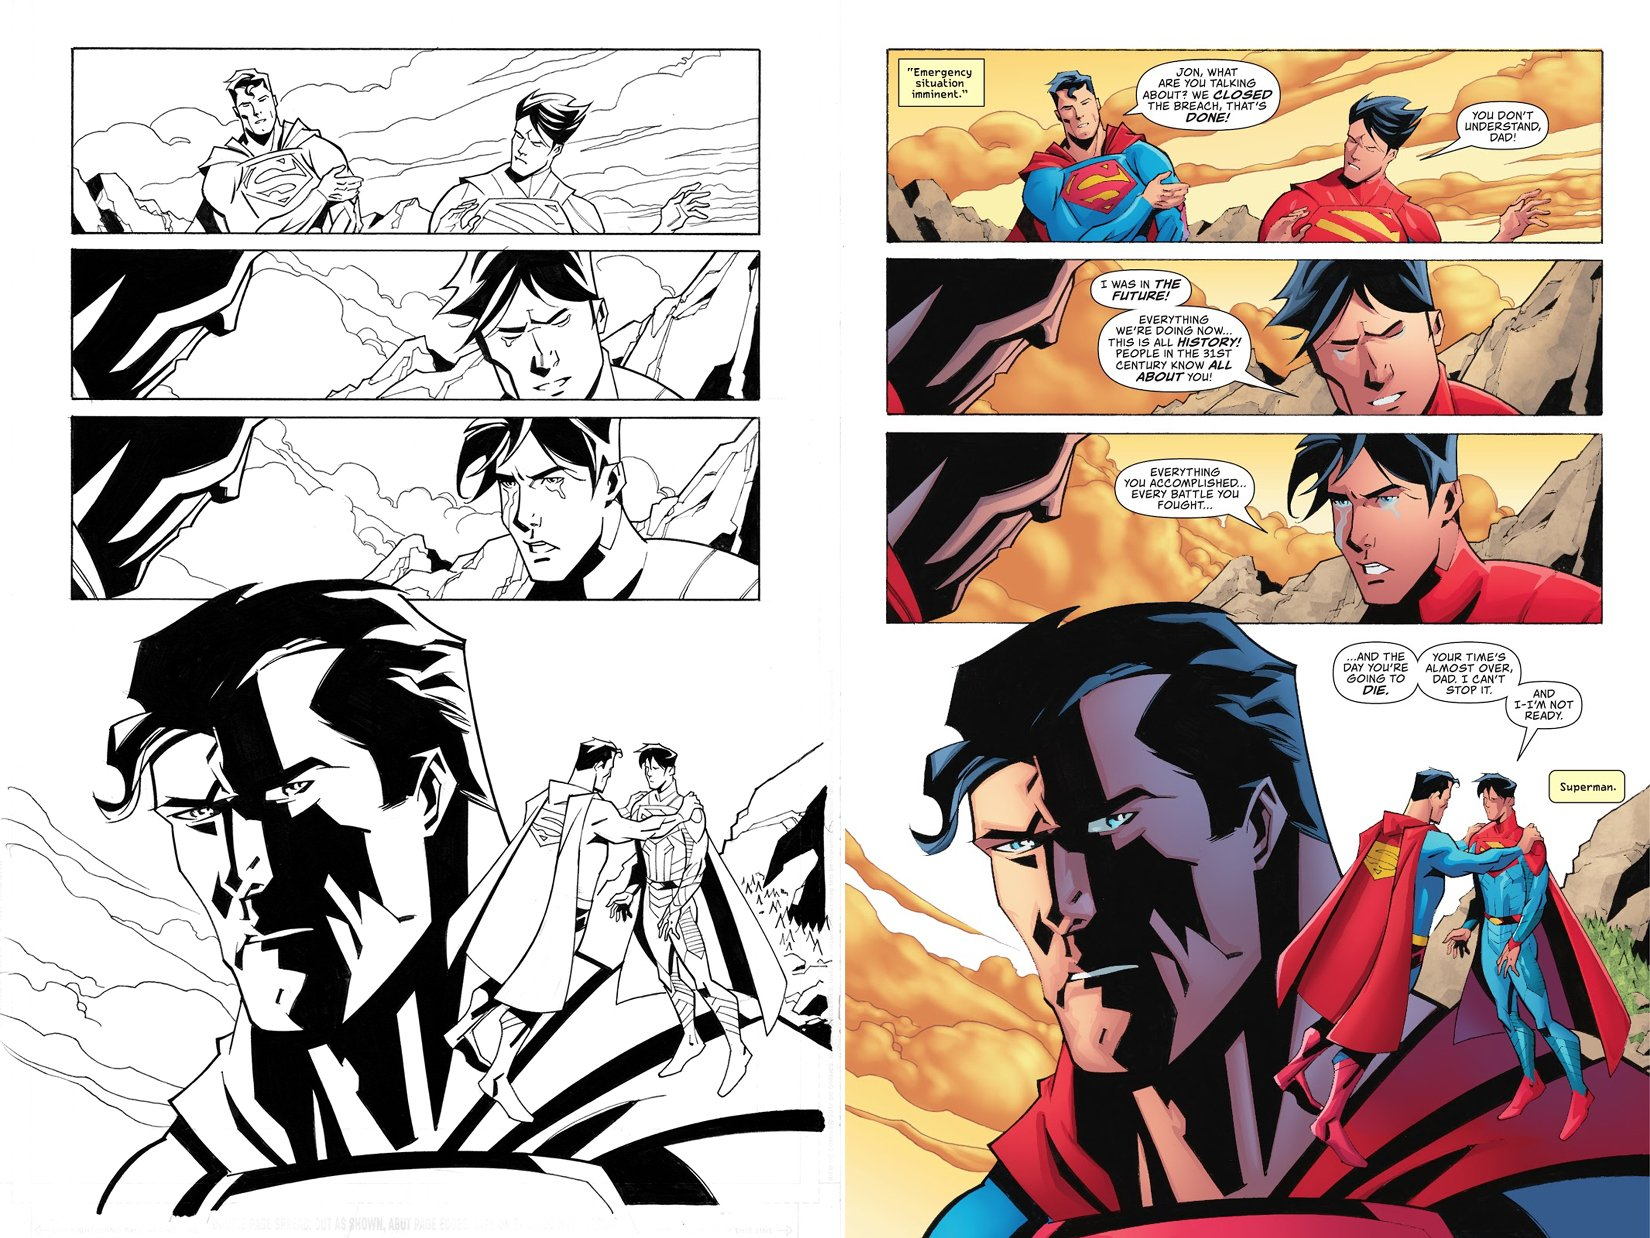 Superman #29 p 19 (SOLD LIVE ON 'DUELING DEALERS OF COMIC ART' EPISODE #33 PODCAST ON 8-25-2021(RE-WATCH THIS FUNNY ART SELLING SHOW HERE)